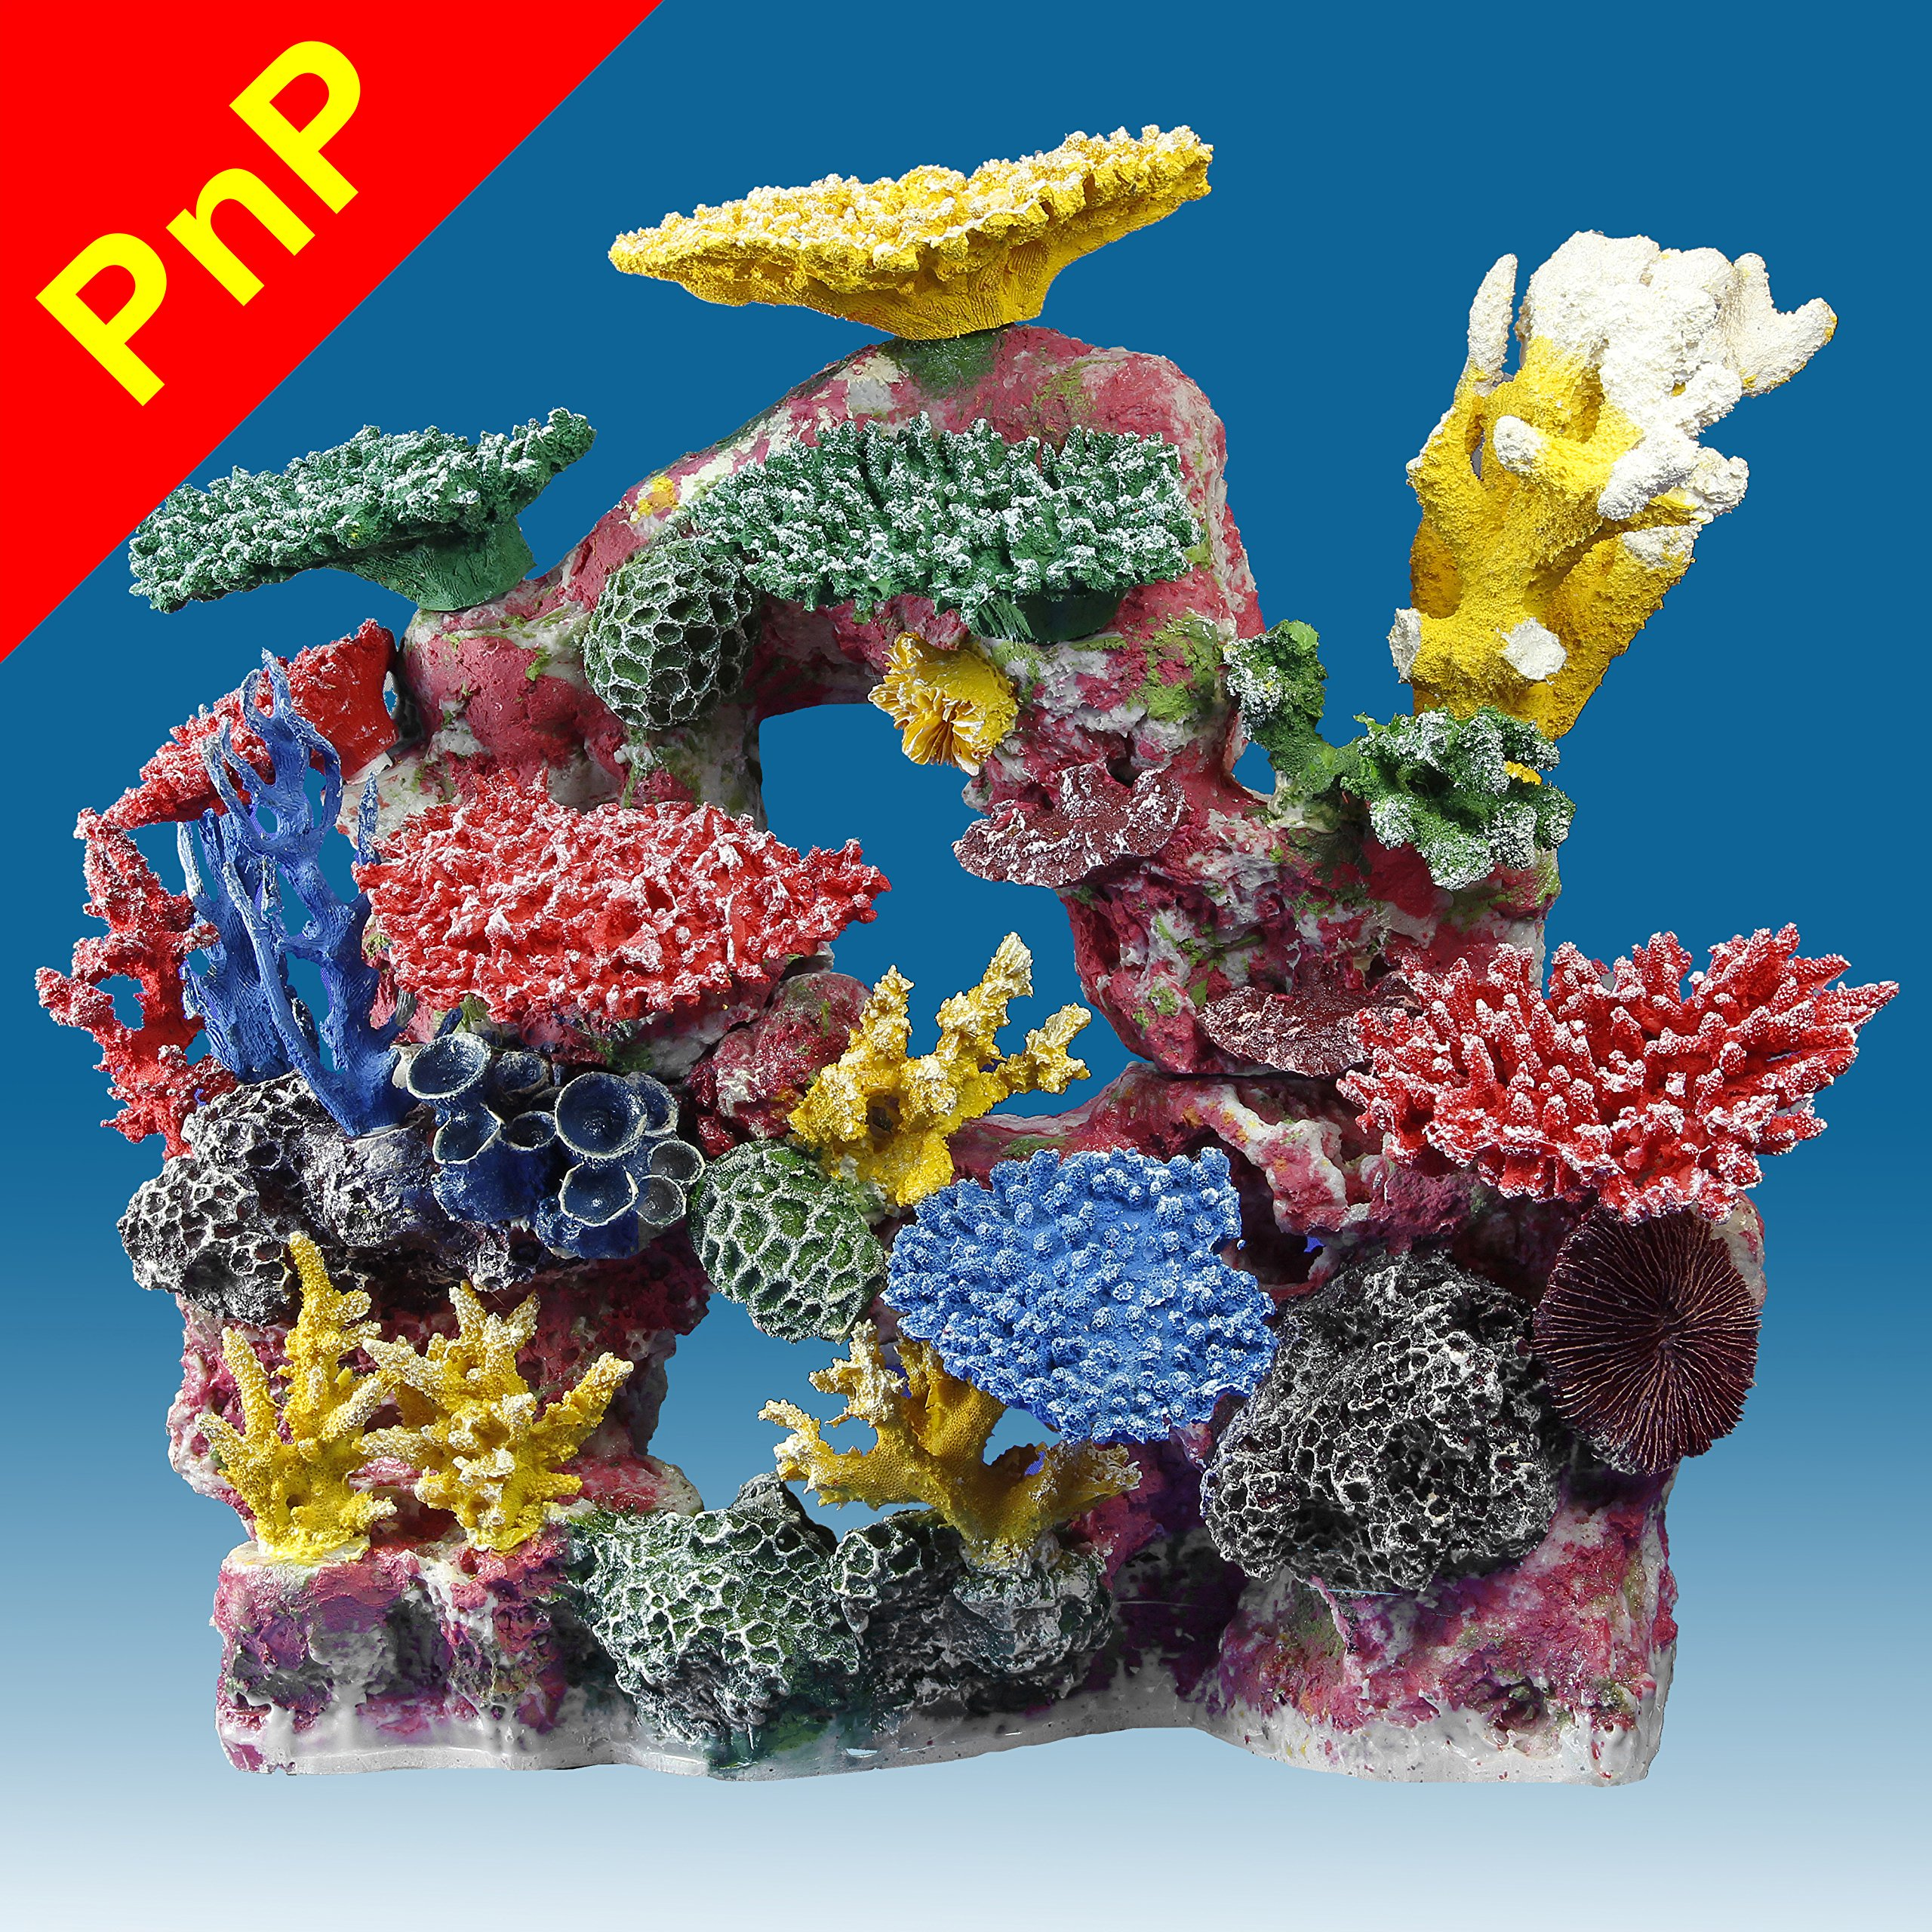 Instant Reef DM034PNP Large Artificial Coral Inserts Decor, Fake Coral Reef Decorations for Colorful Freshwater Fish Aquariums, Marine and Saltwater Fish Tanks by Instant Reef